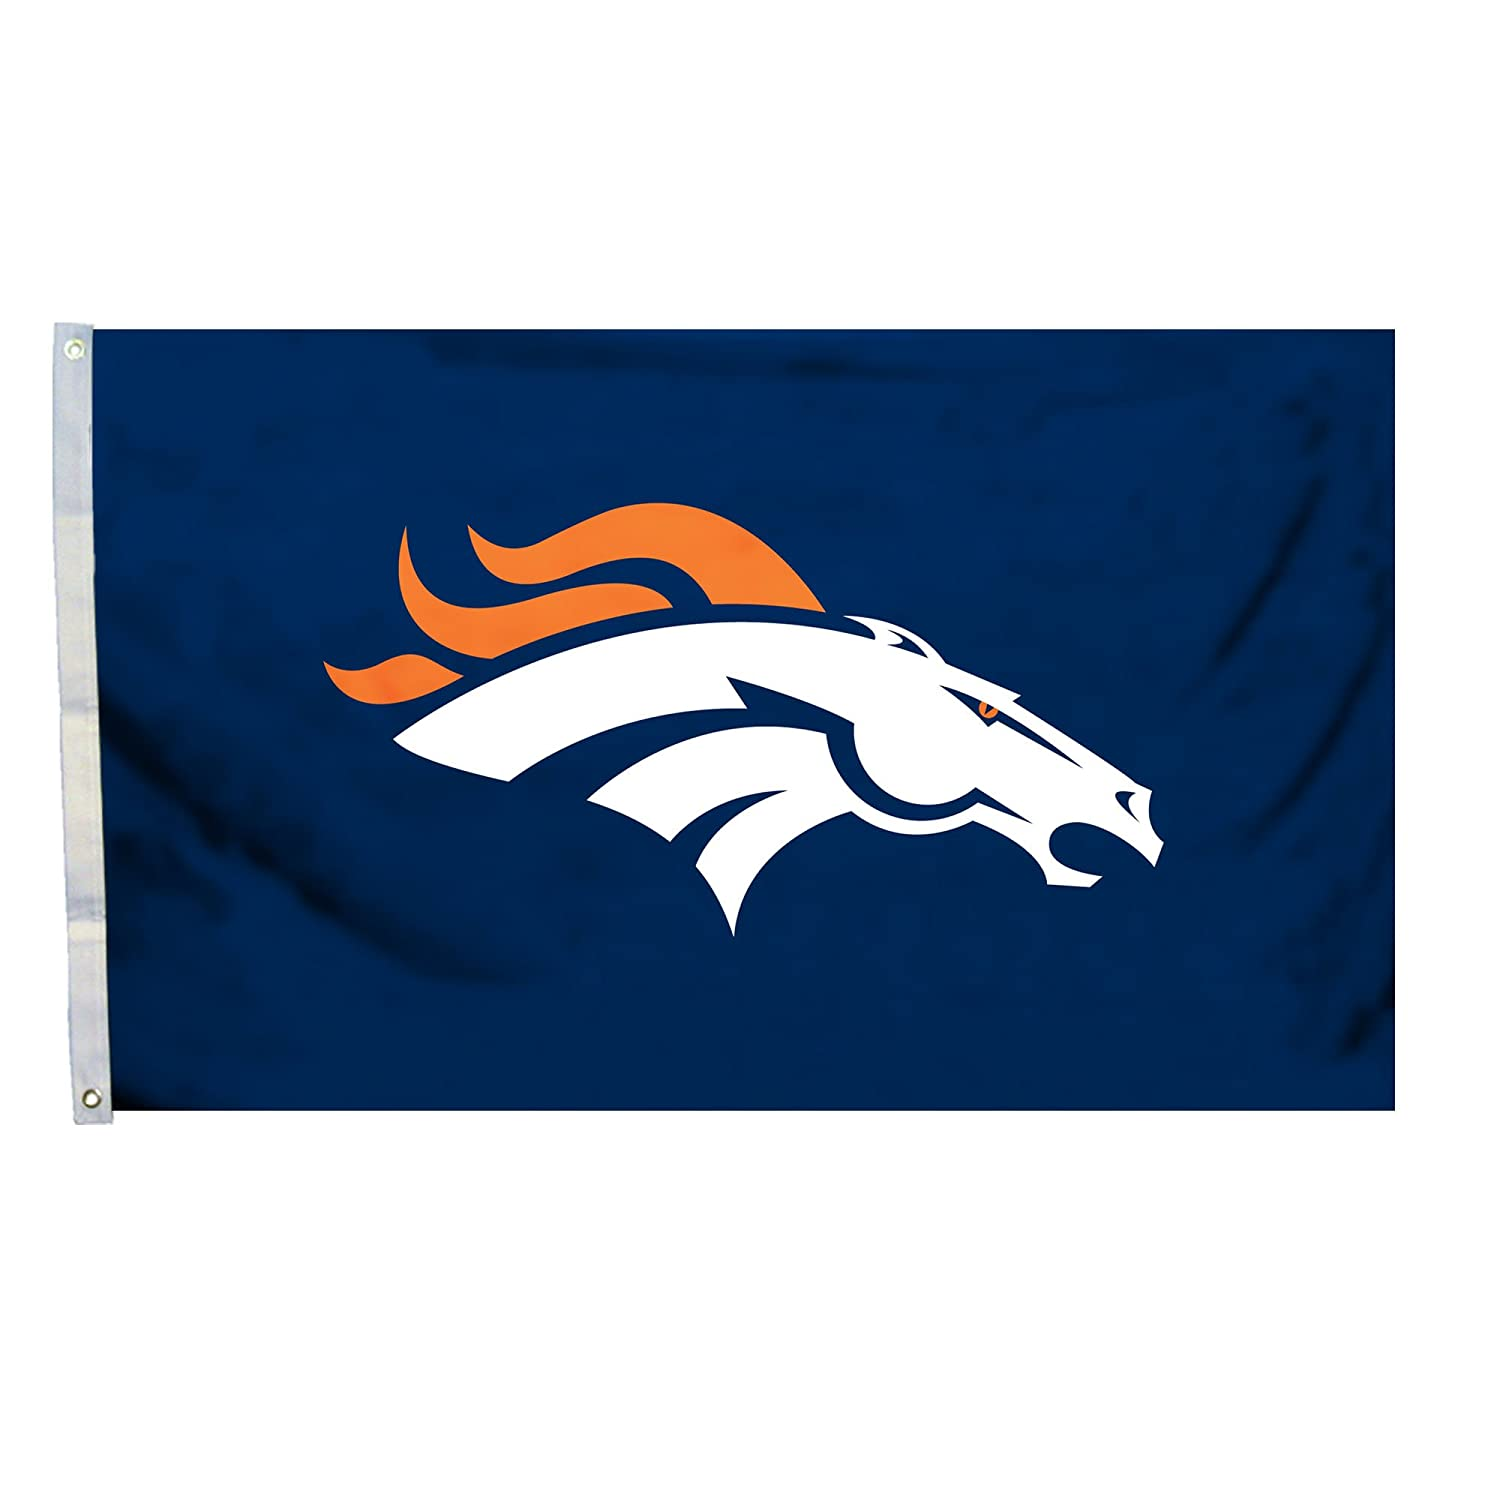 amazon com nfl denver broncos logo flag with grommets 3 x 5 foot rh amazon com denver broncos downloadable logo free